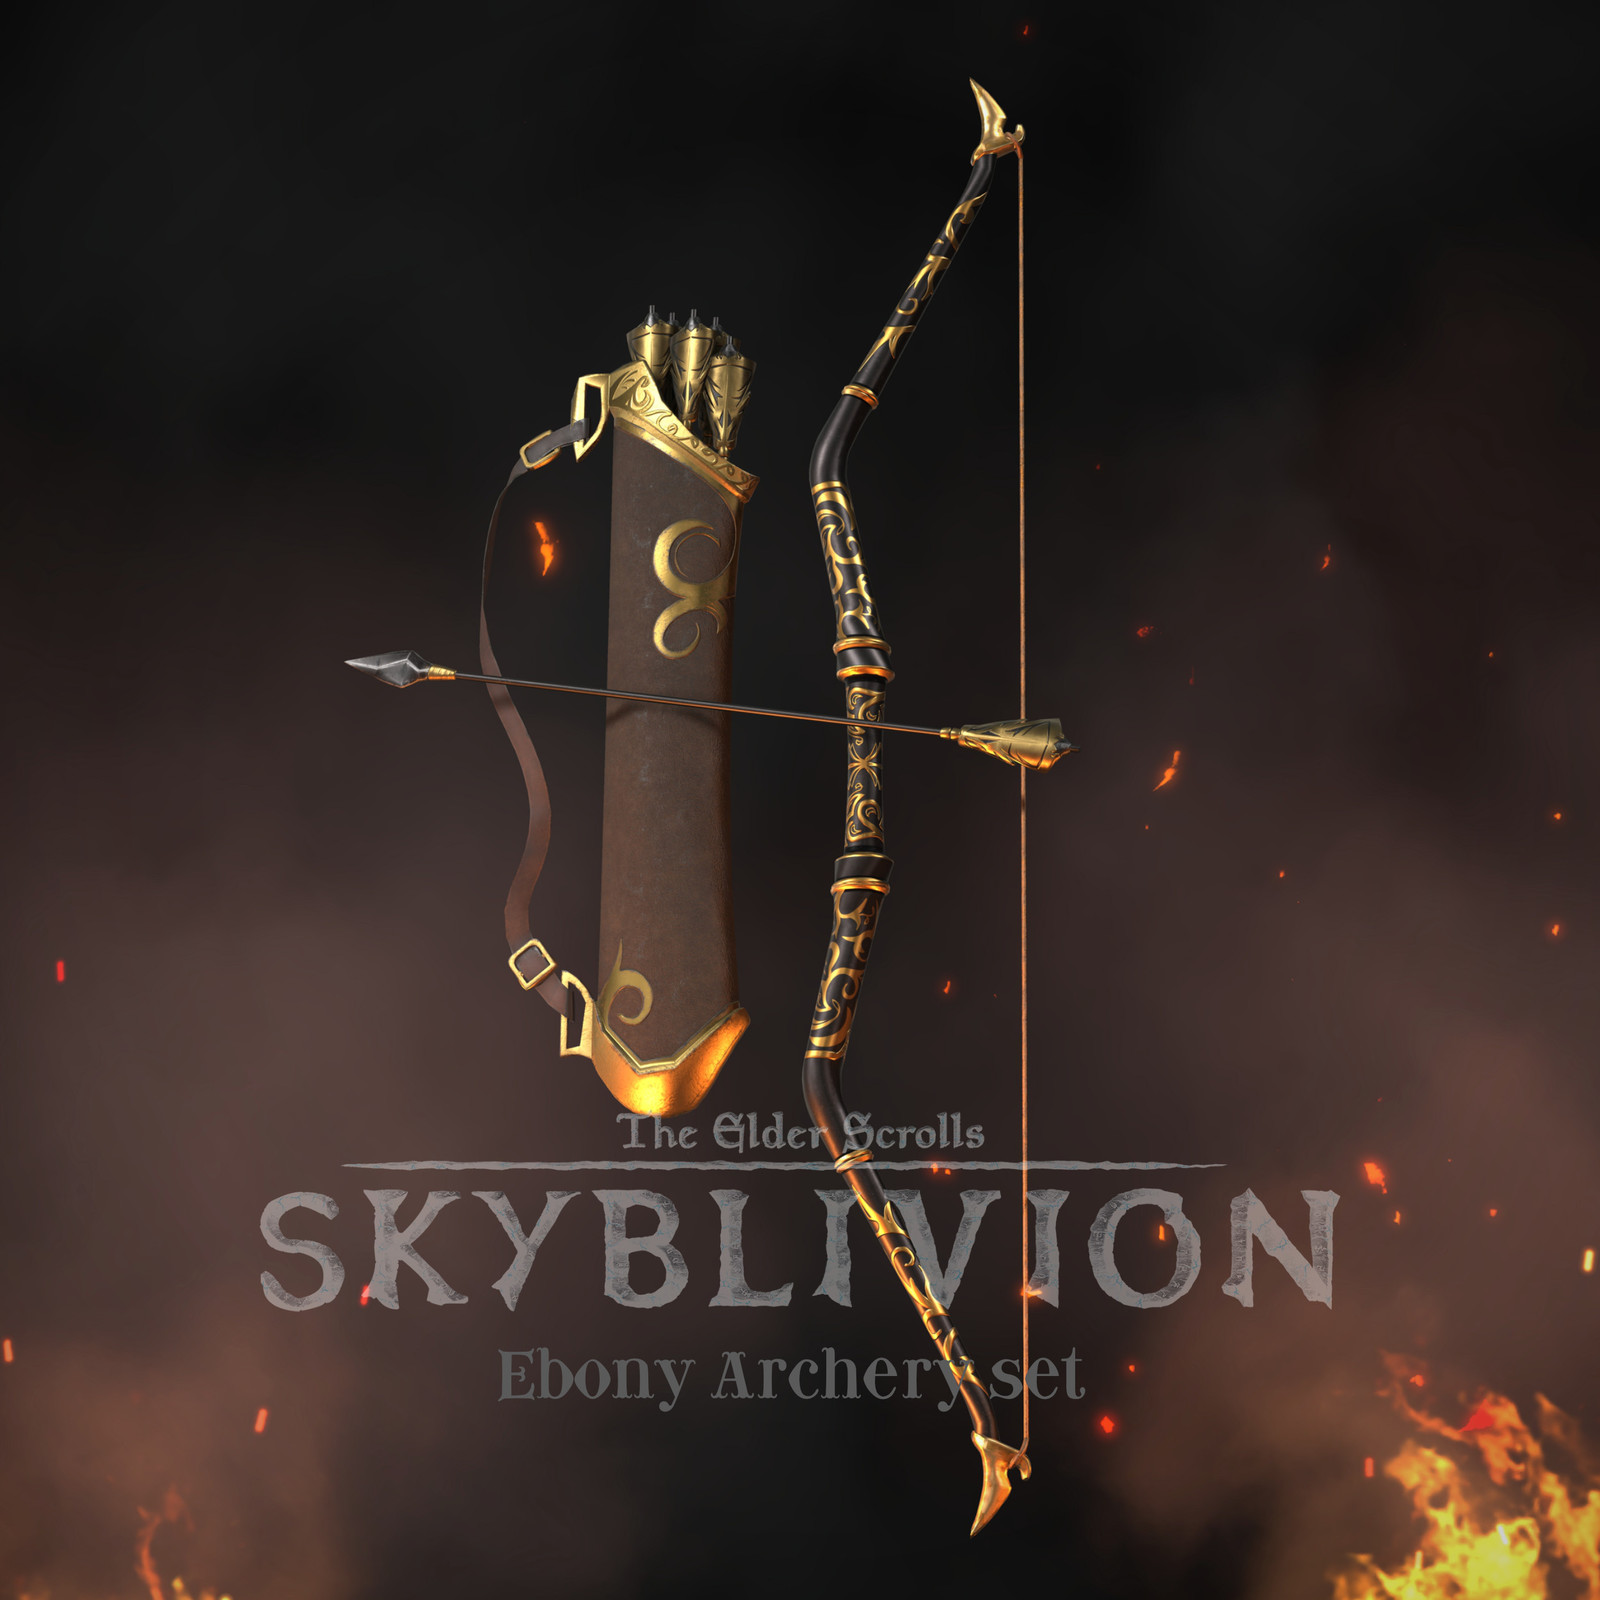 Ebony Archery set - TES:Skyblivion